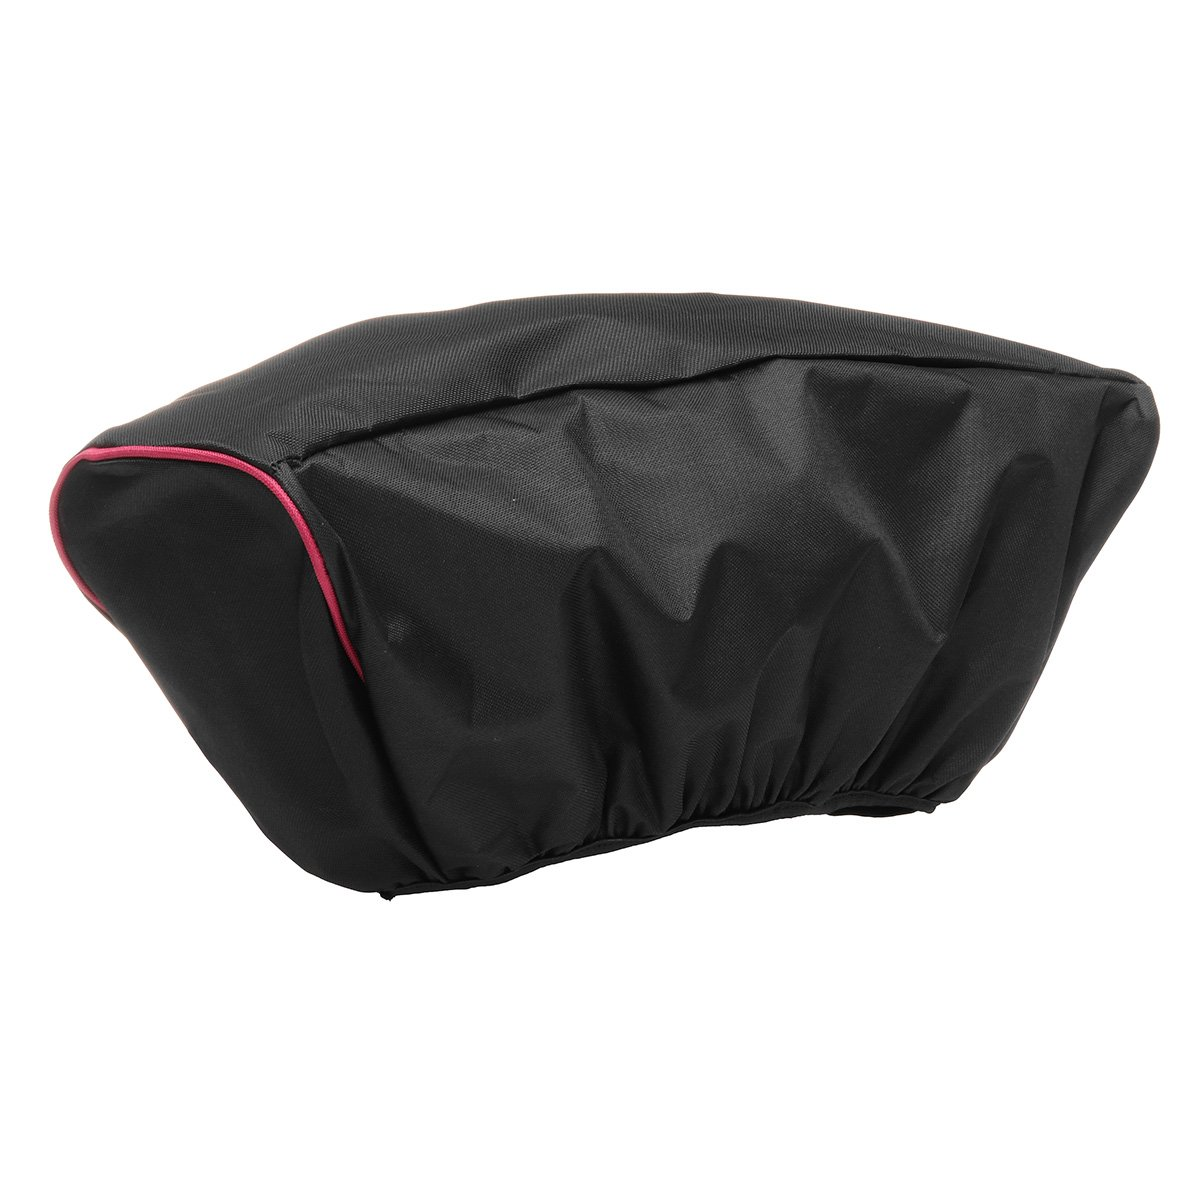 Winch Cover Waterproof Soft Winch Dust Cover with 600D Heavy Duty Oxford Fabric Driver Recovery 8,500 to 17,500 Pound Capacit 21.5 W x 9.5 H x 7.5 D